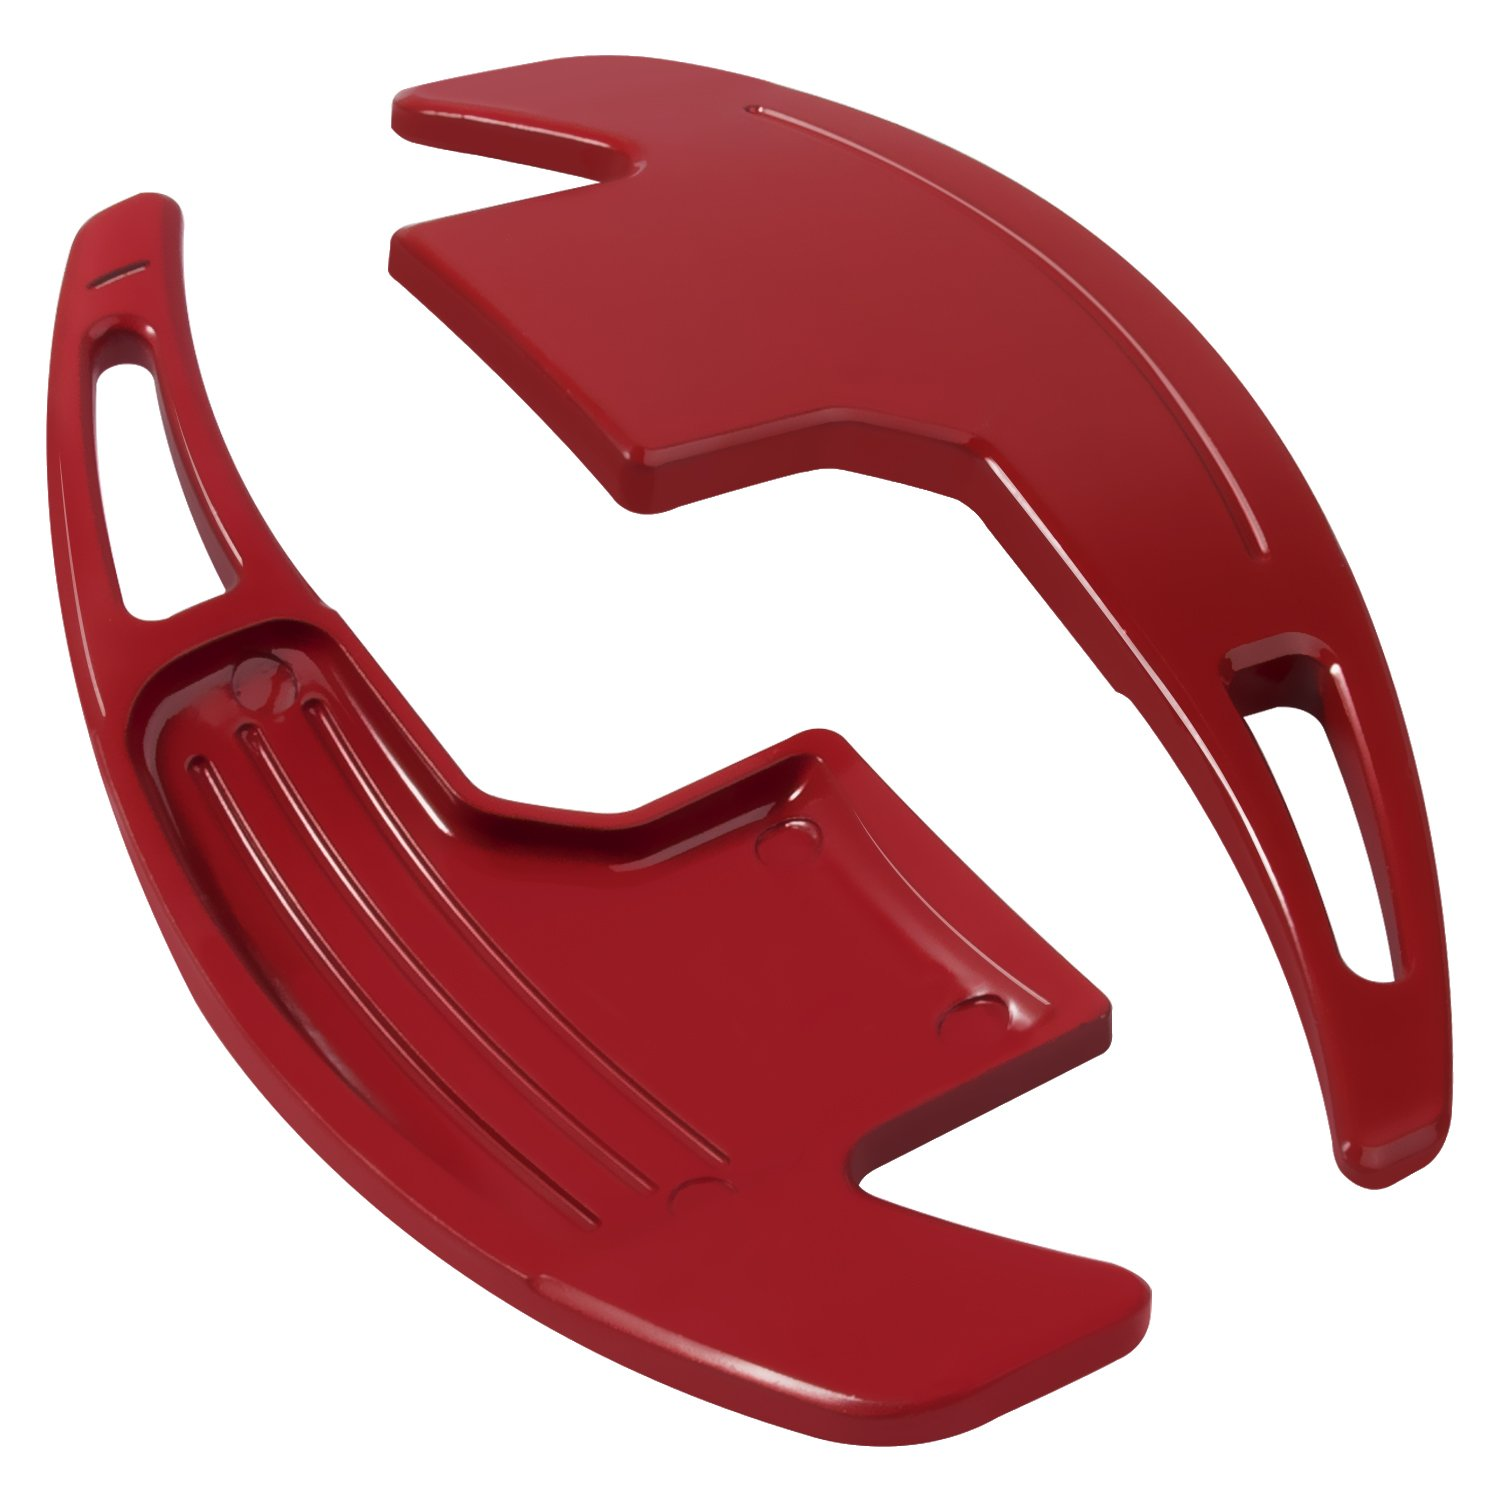 Red Danti 2Pcs Aluminum Steering Wheel Dull Polish Shift Paddle Shifter Extension for Ford Mustang 2015 2016 2017 2018